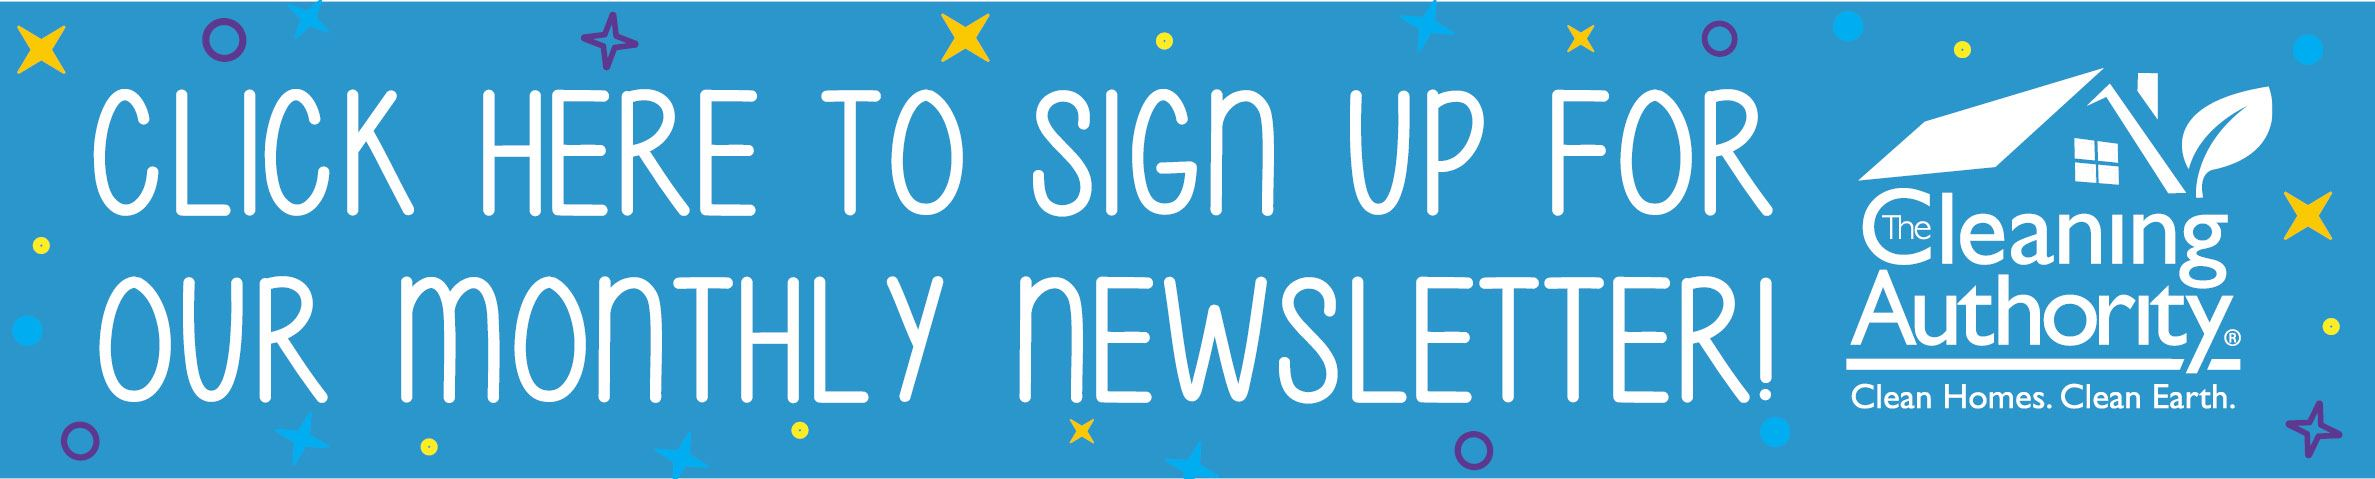 Sign up for monthly newsletter